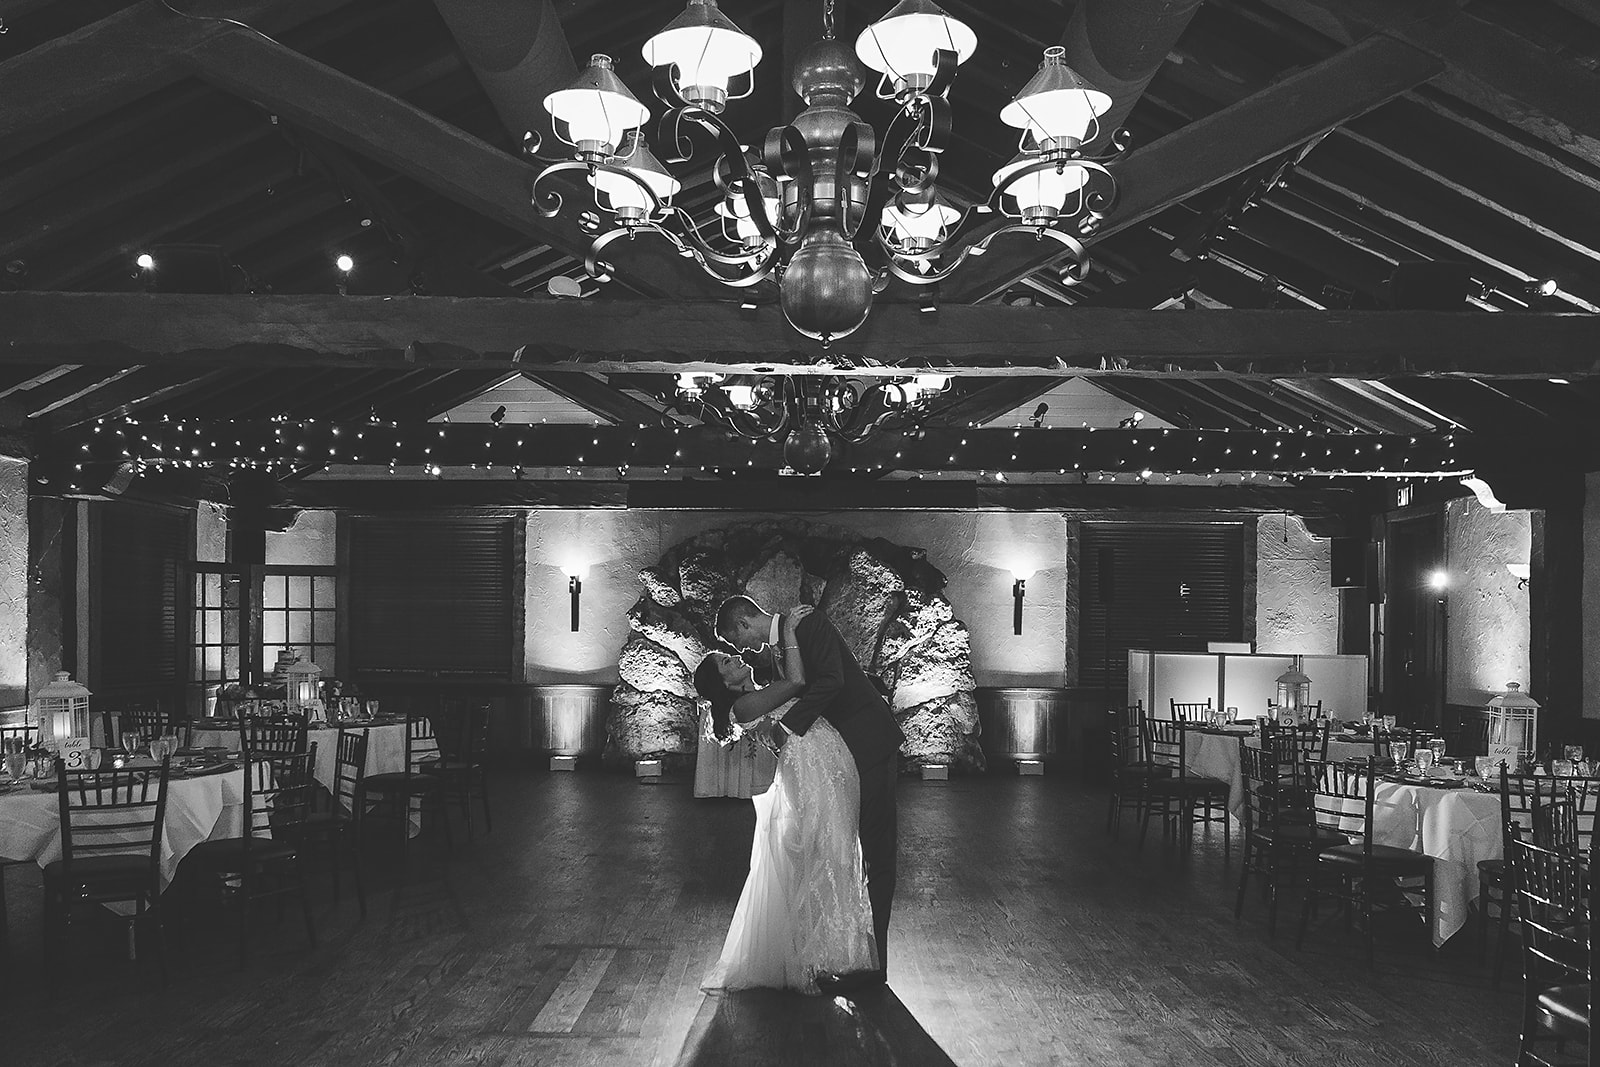 black and white photo of bride and groom dancing in ballroom